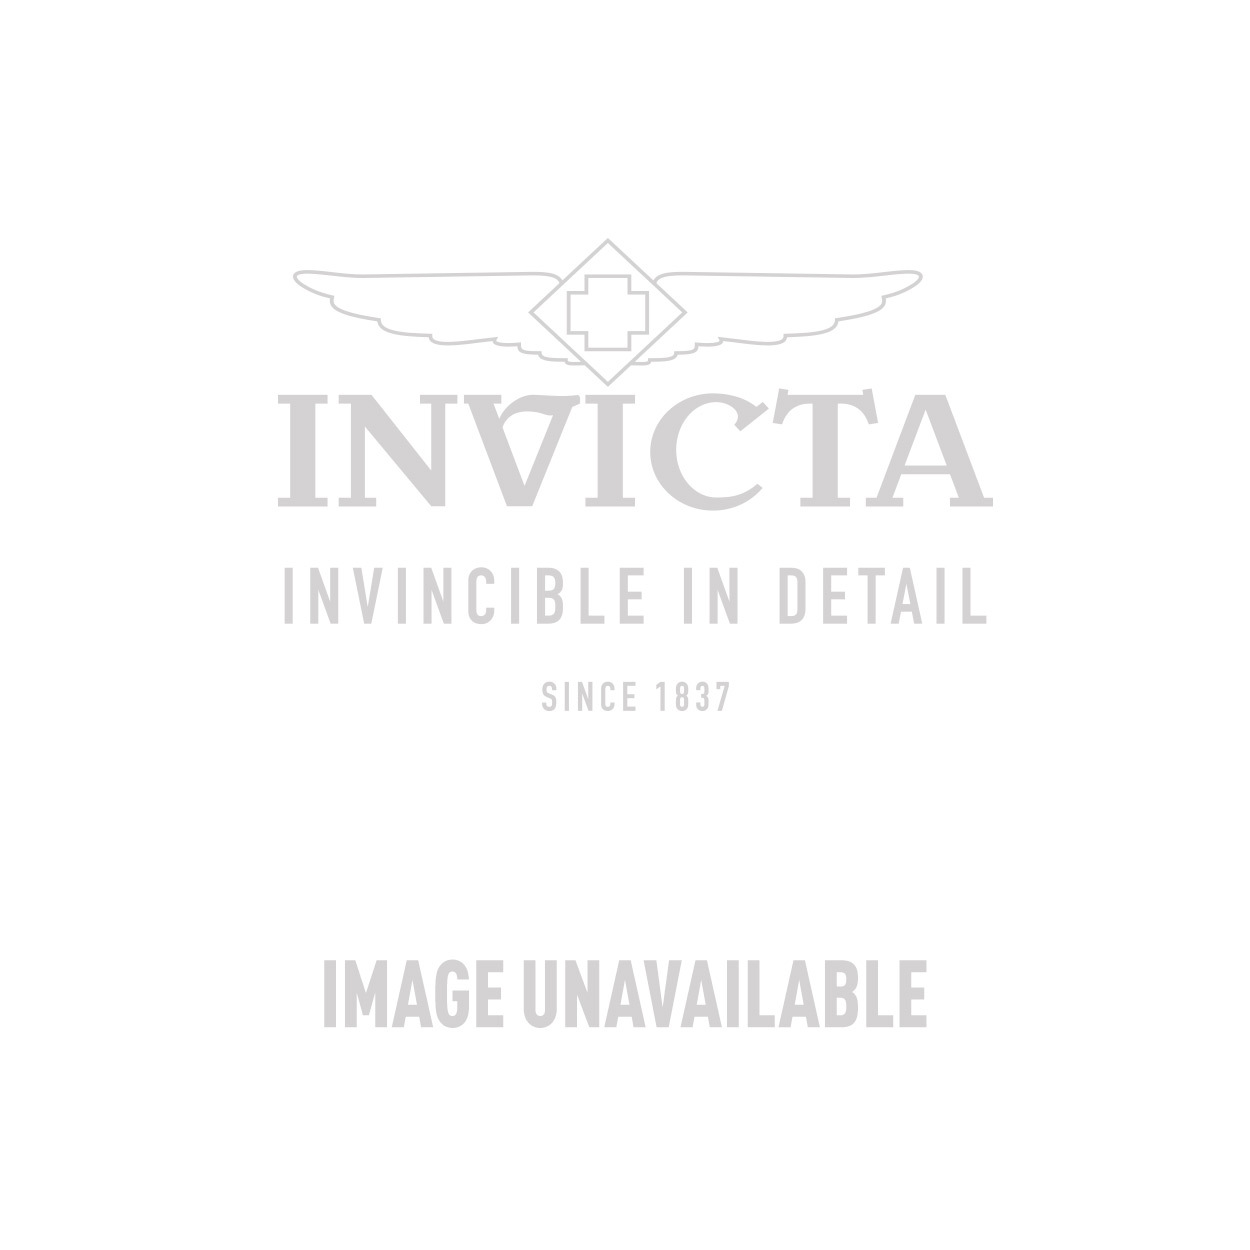 b375d4ccb Invicta Aviator Mens Automatic 50 mm Stainless Steel Case Silver Dial -  Model 28171